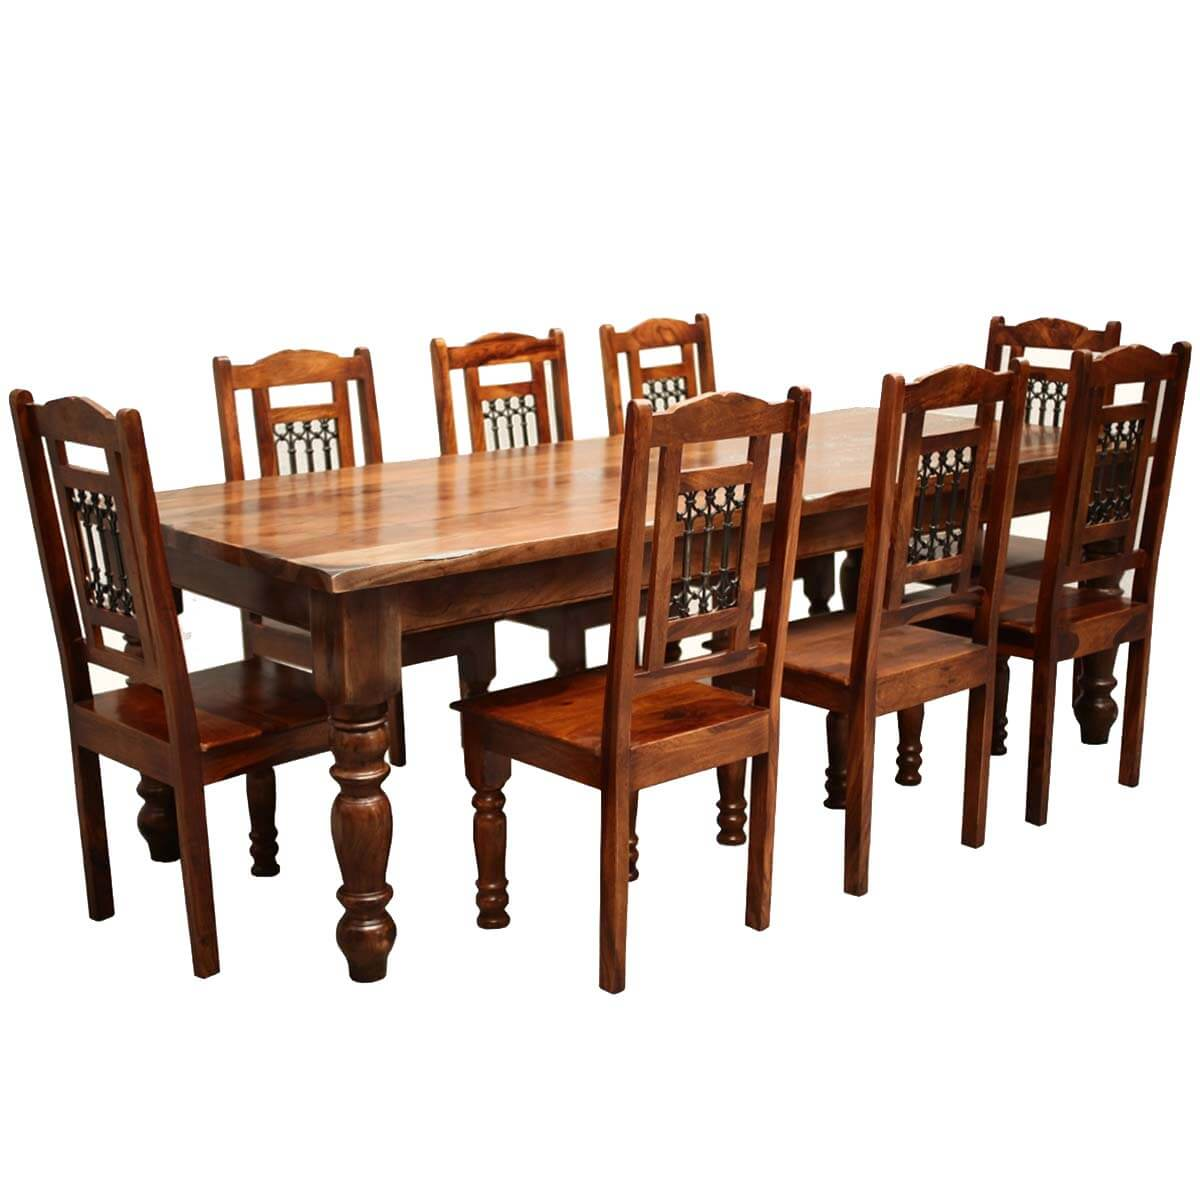 Oak Kitchen Tables And Chairs Sets: Rustic Furniture Solid Wood Large Dining Table & 8 Chair Set